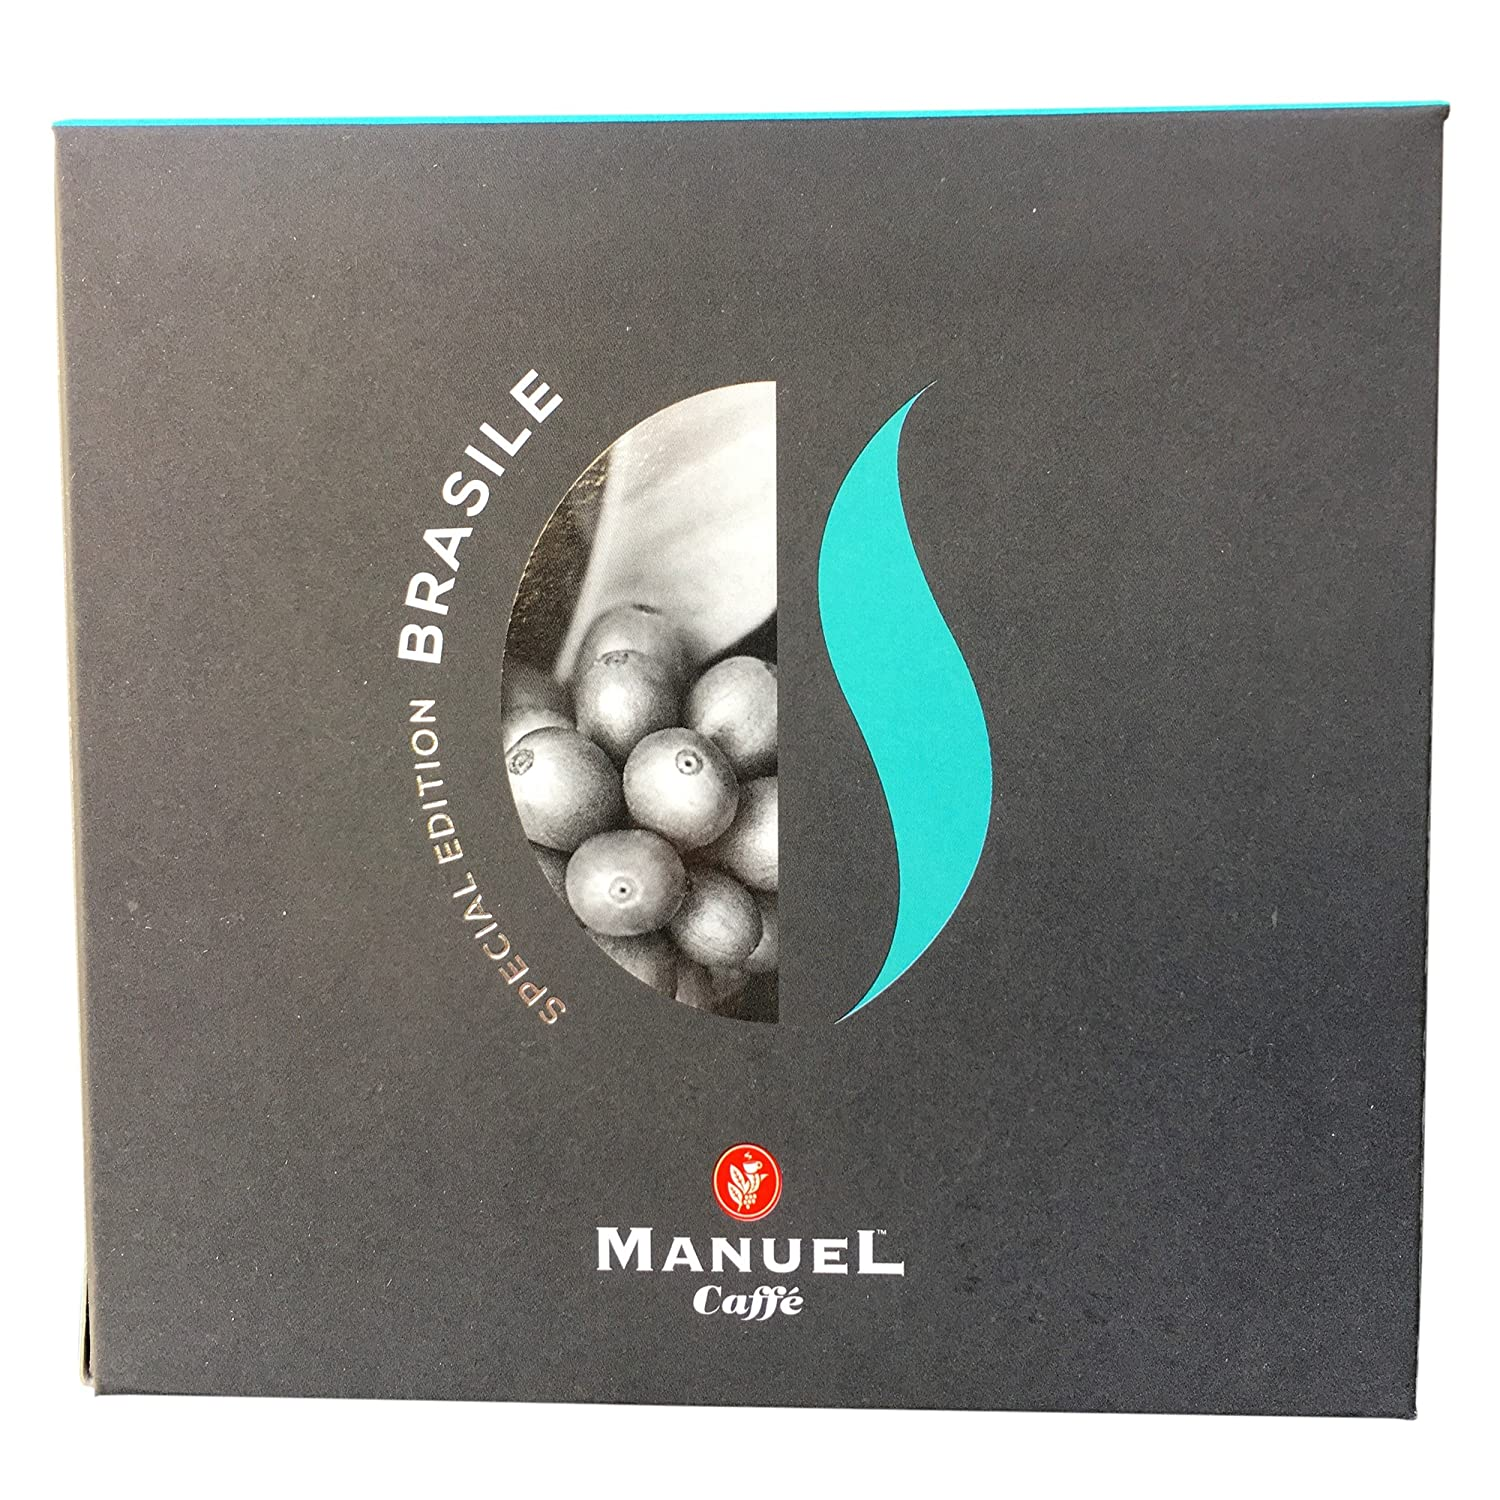 10 Packs Nespresso Compatible Capsules. Roasted Italian Premium Espresso, Manuel Caffe. Intense Aroma, Fine And Mild, Aromatic In The Cup. Thick Crema.